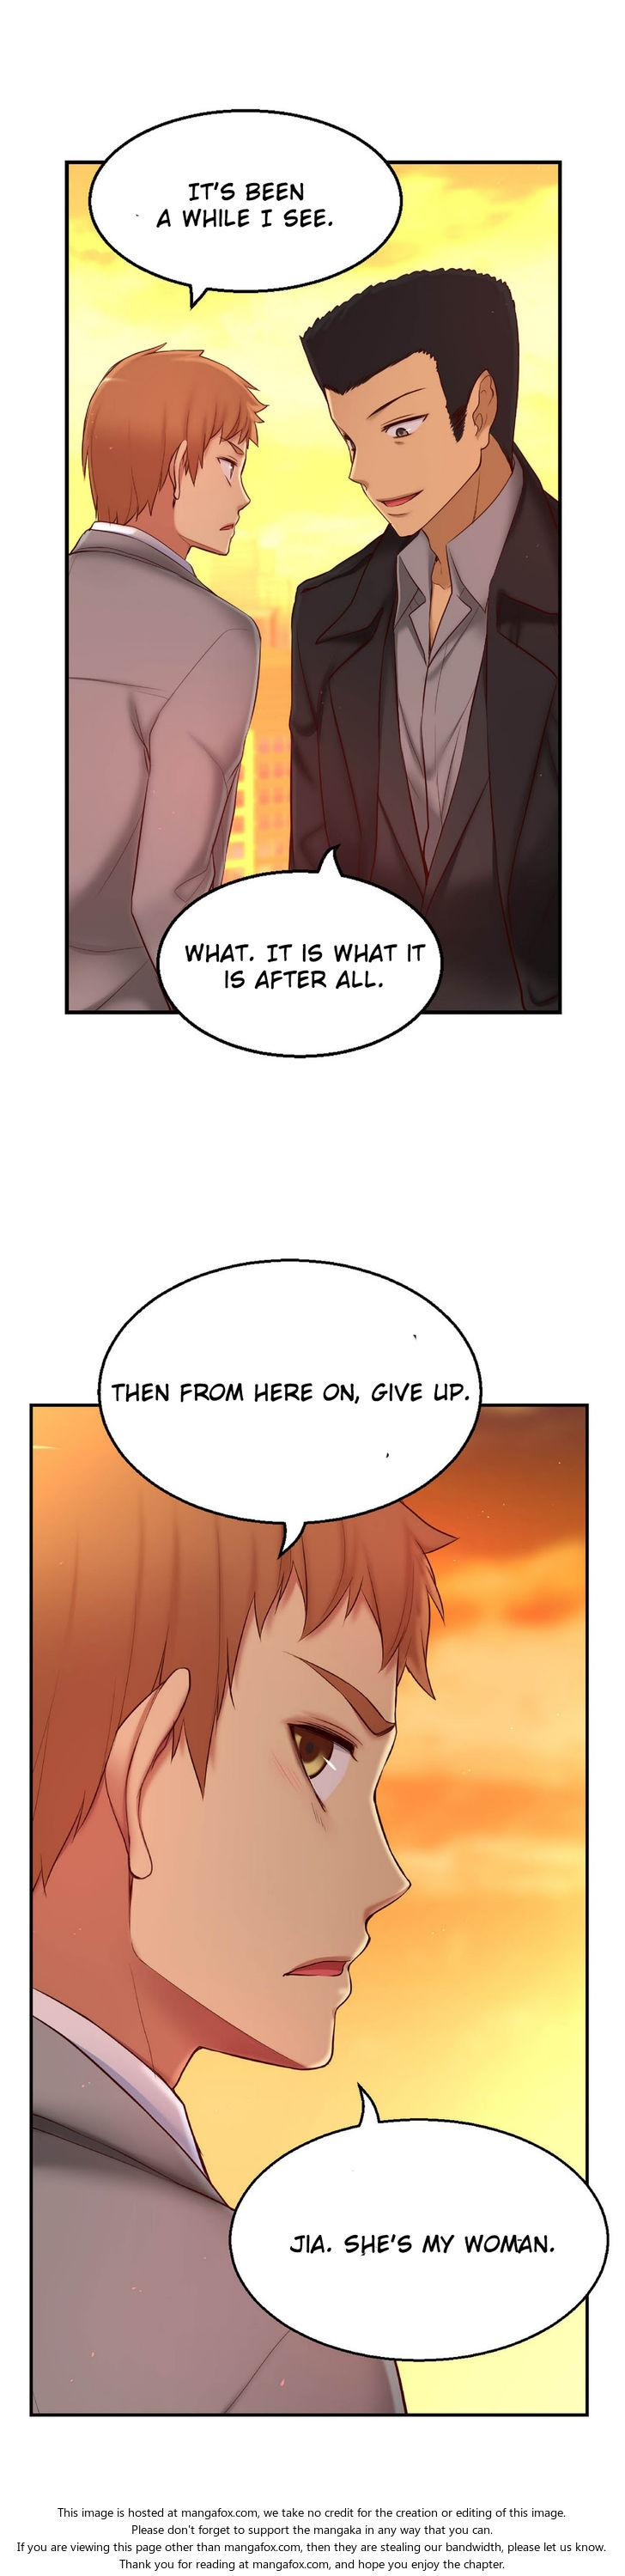 [Donggul Gom] She is Young (English) Part 1/2 1449